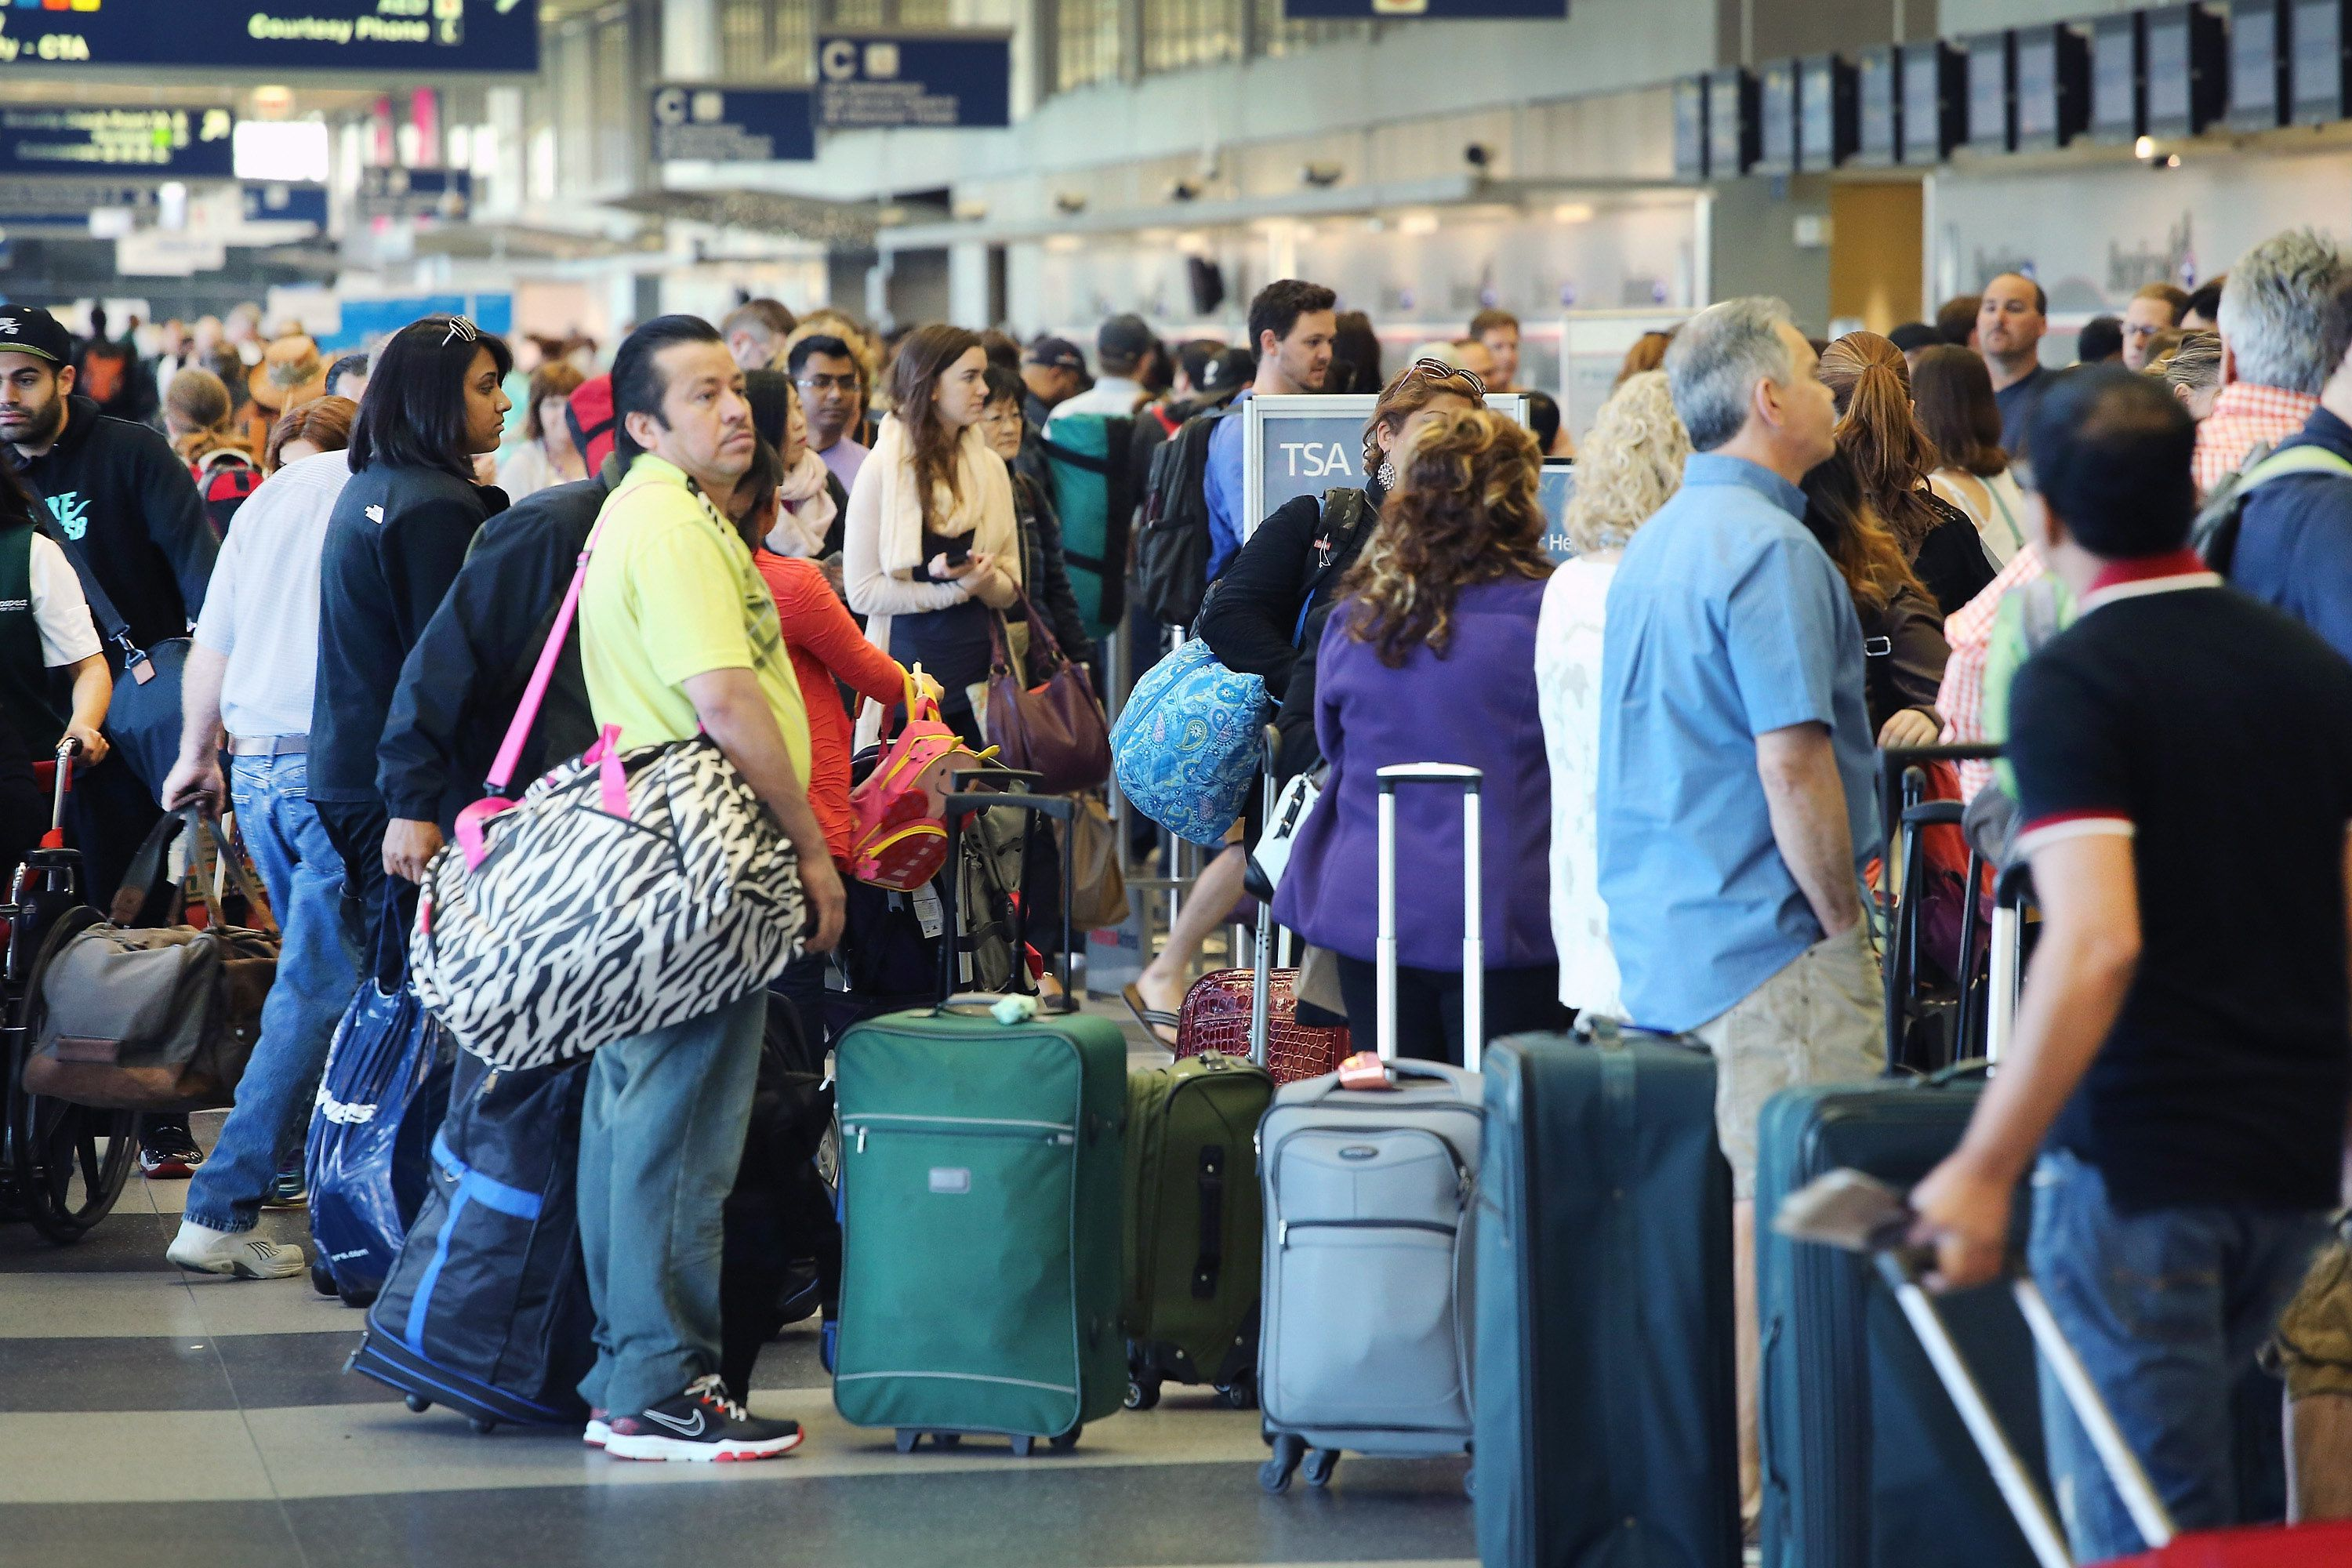 Passengers wait in line at a security checkpoint at O'Hare Airport in Chicago.